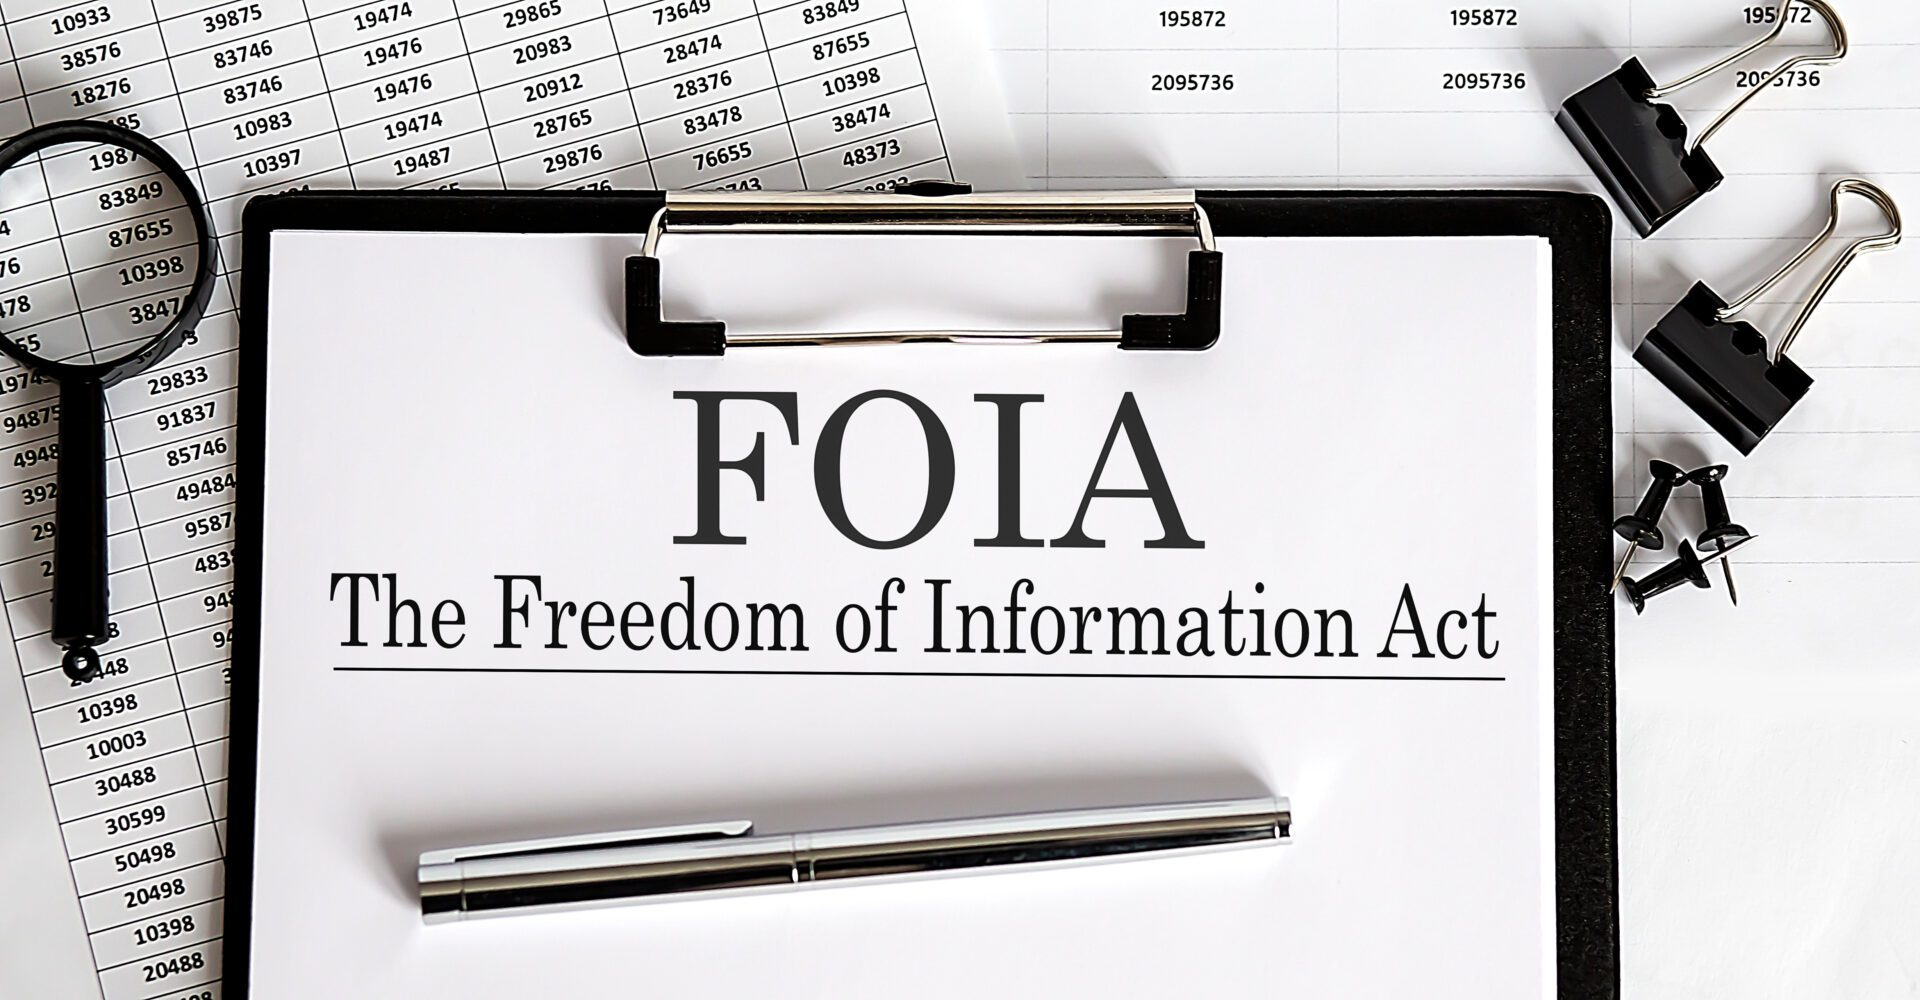 Paper,With,The,Freedom,Of,Information,Act,Foia,On,Table